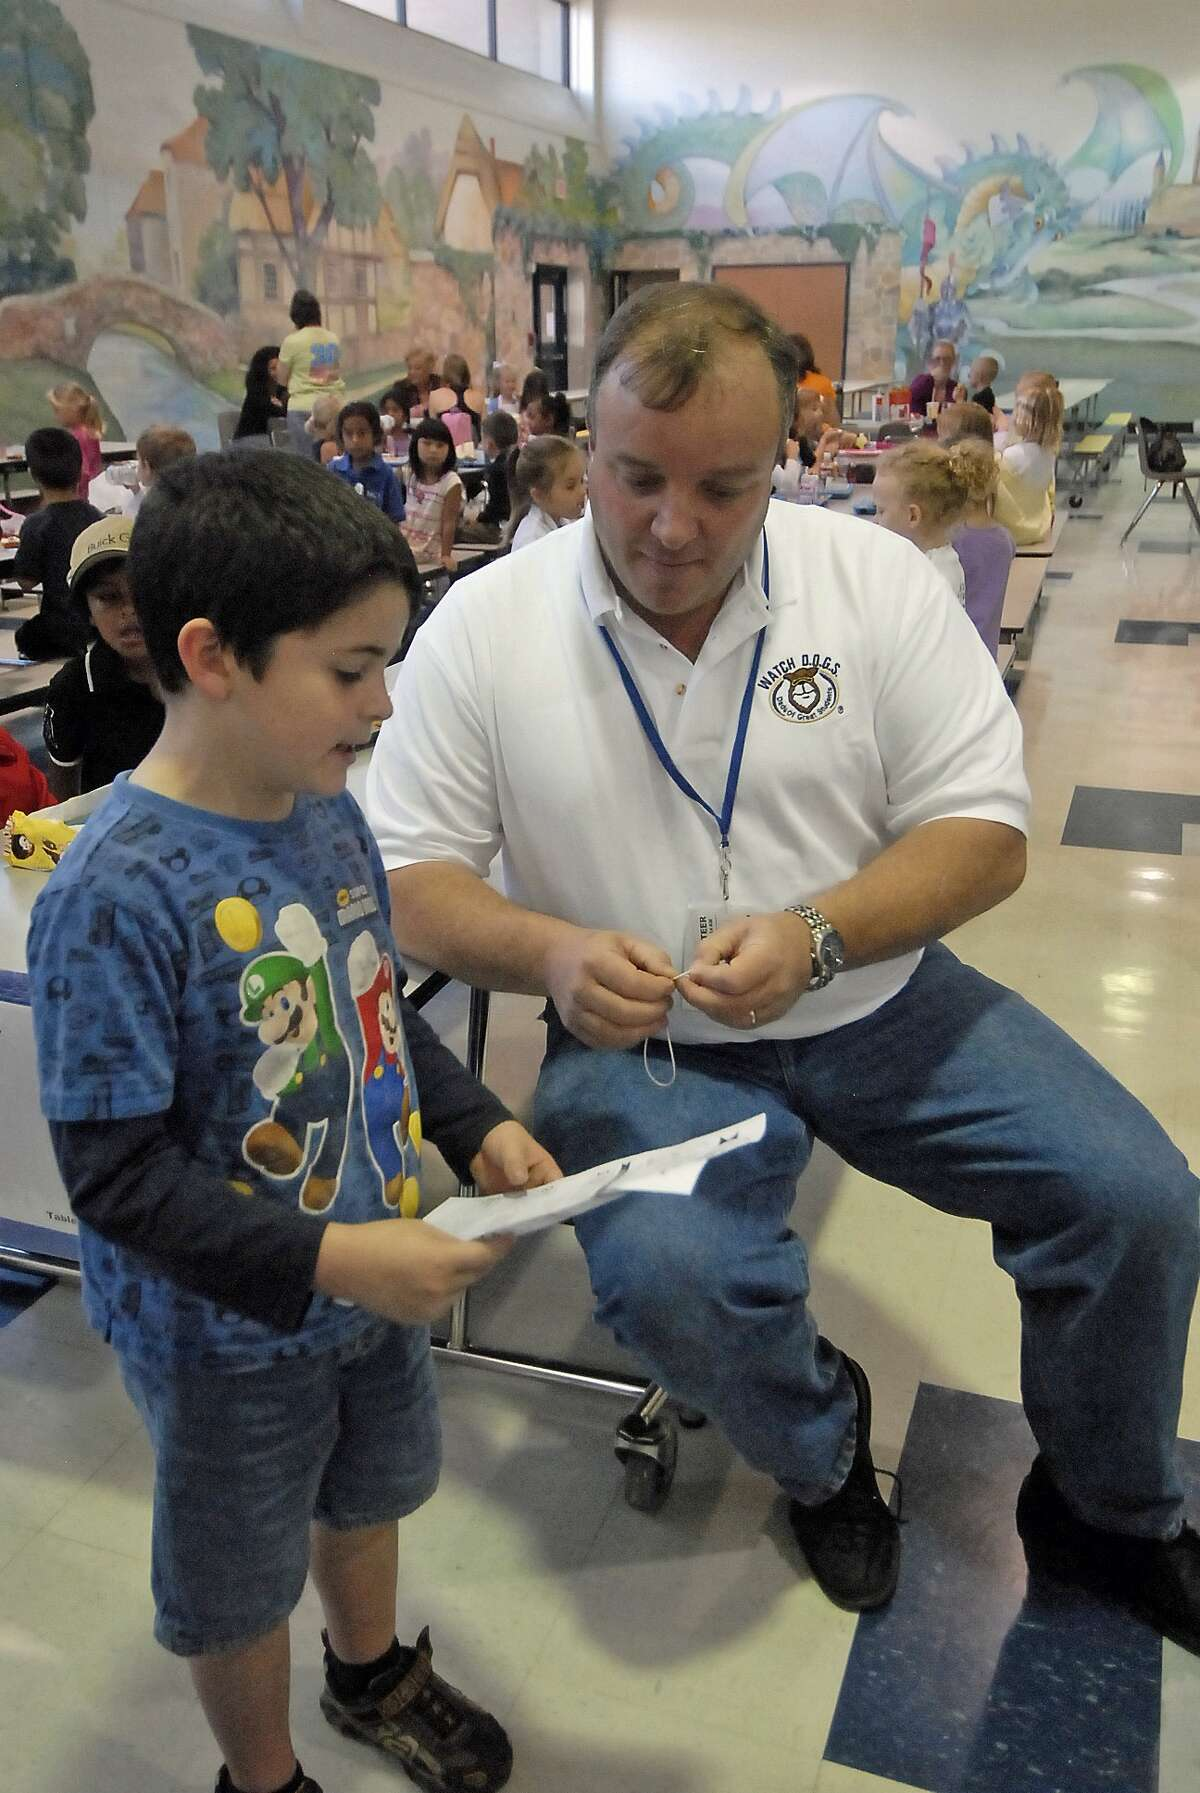 Nottingham Country Elementary Watch D.O.G.S. member Curt Bigge helps his seven-year-old son Tom Bigge with a project.